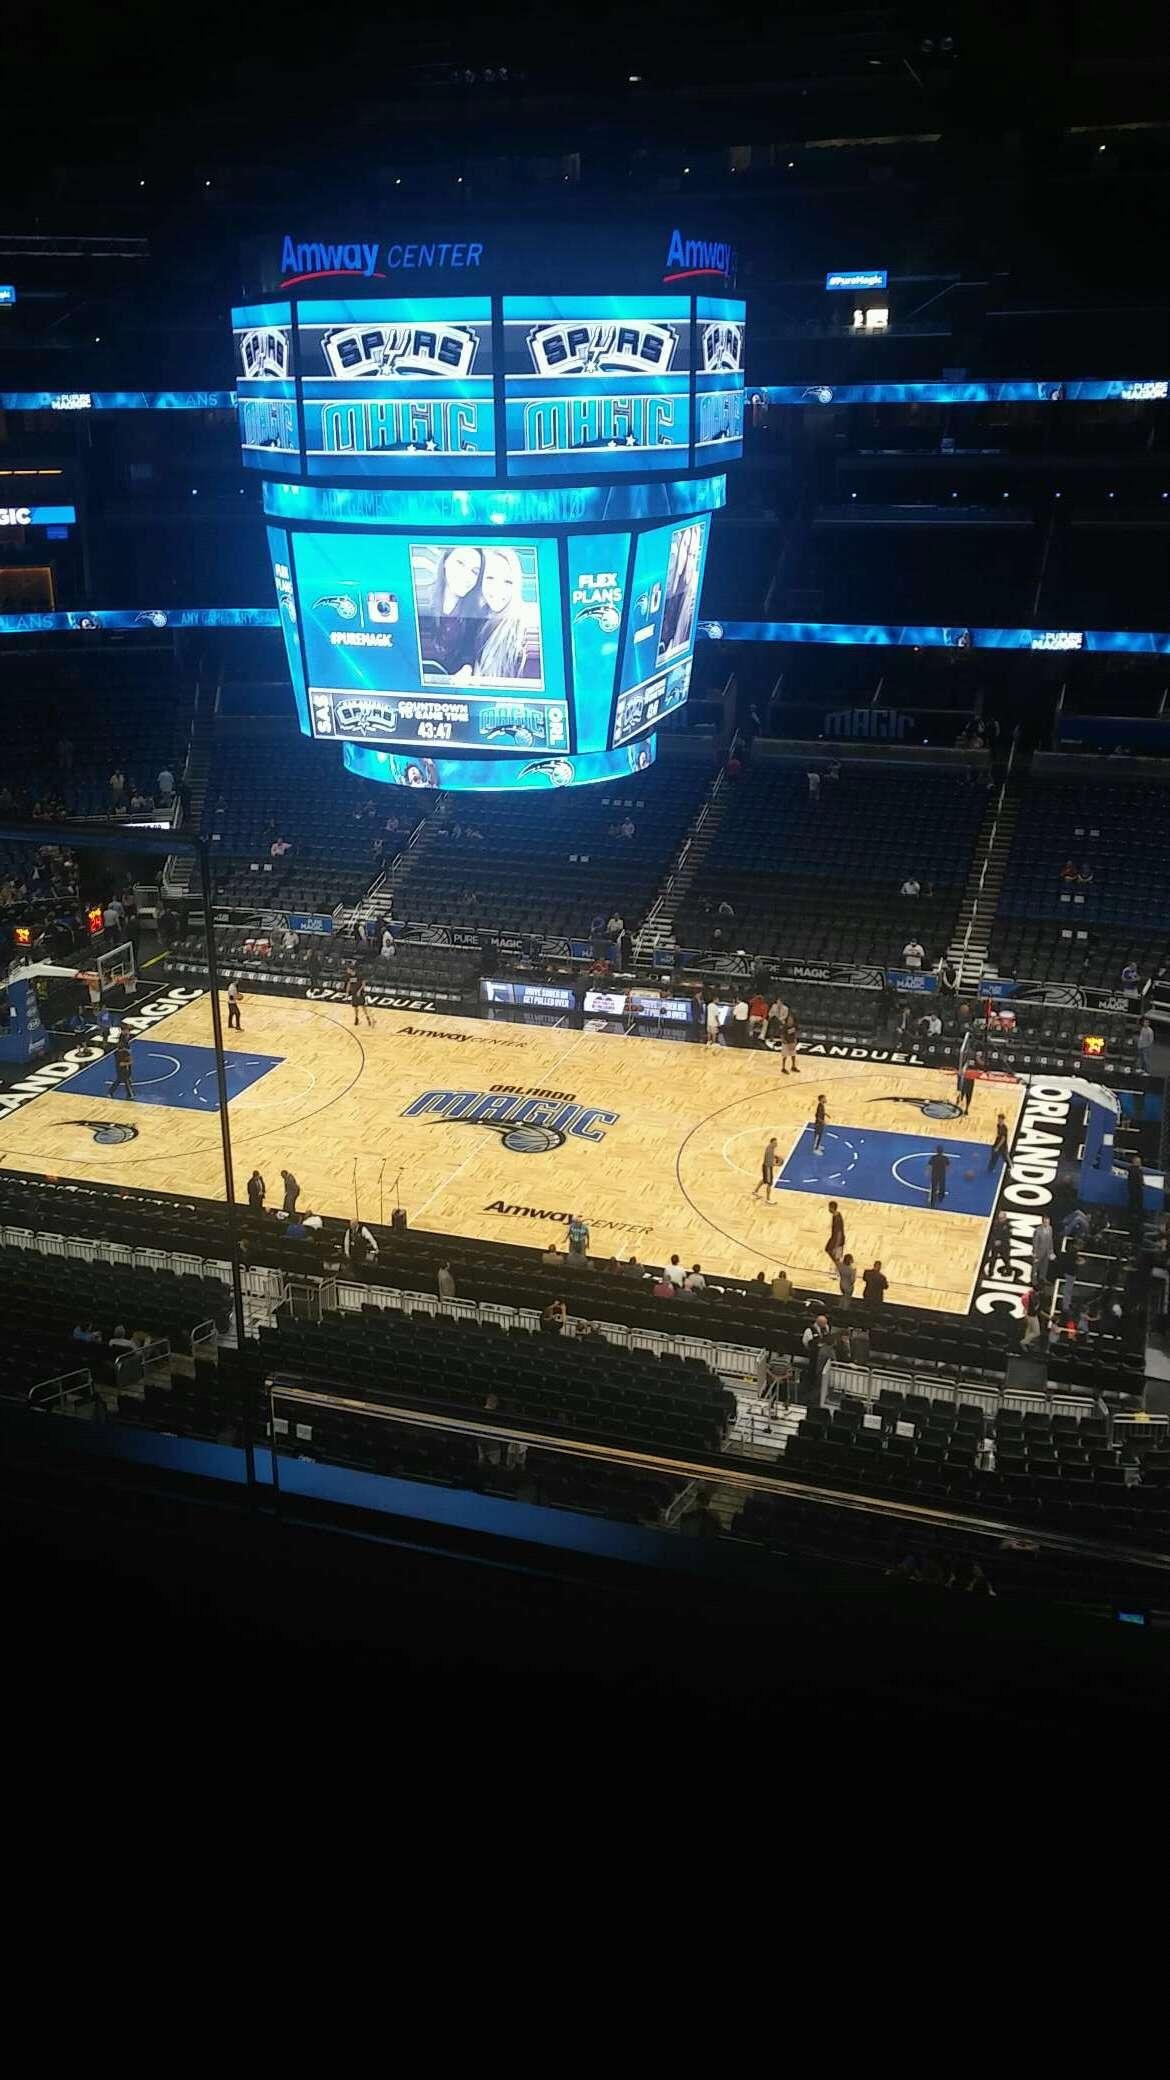 Amway Center Section 223 Row 2 Seat 15-16